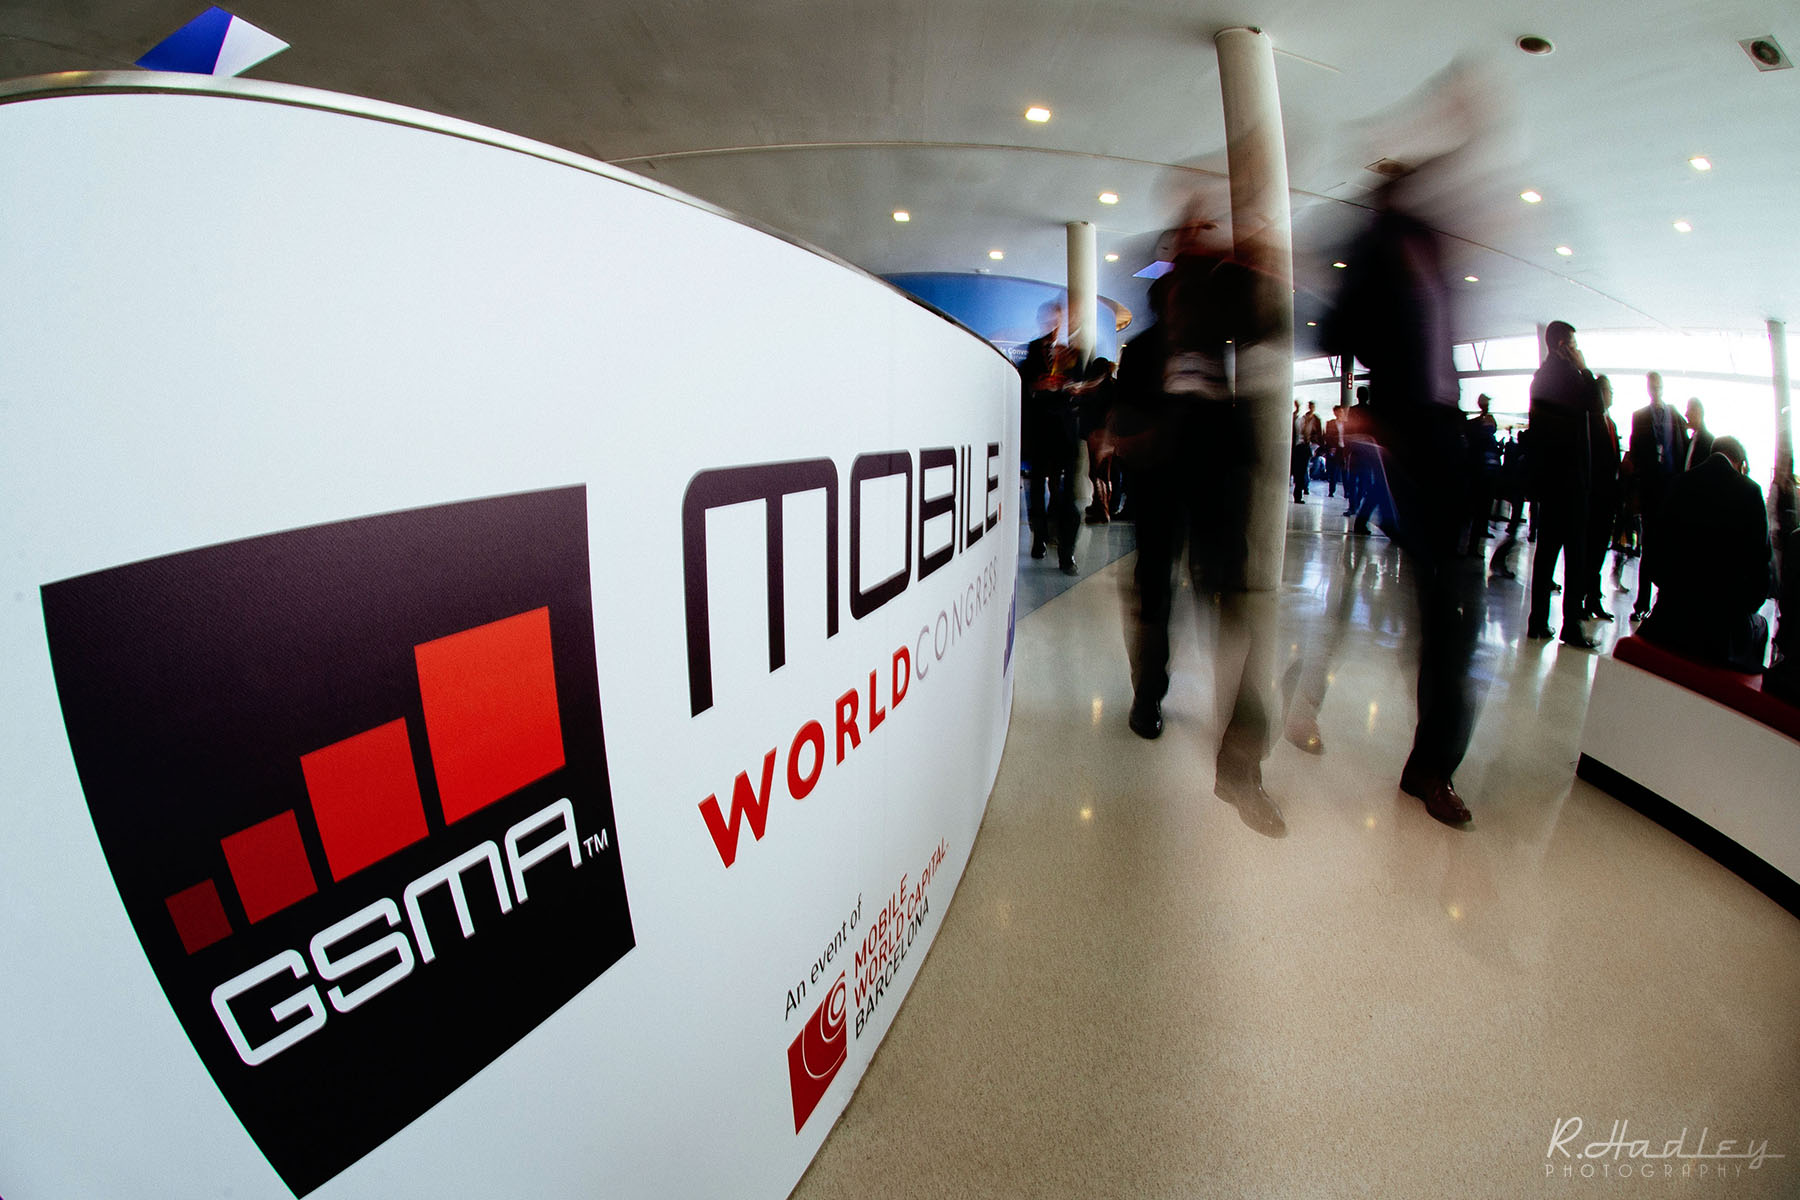 Event photography at the Mobile World Congress (MWC) in Barcelona.